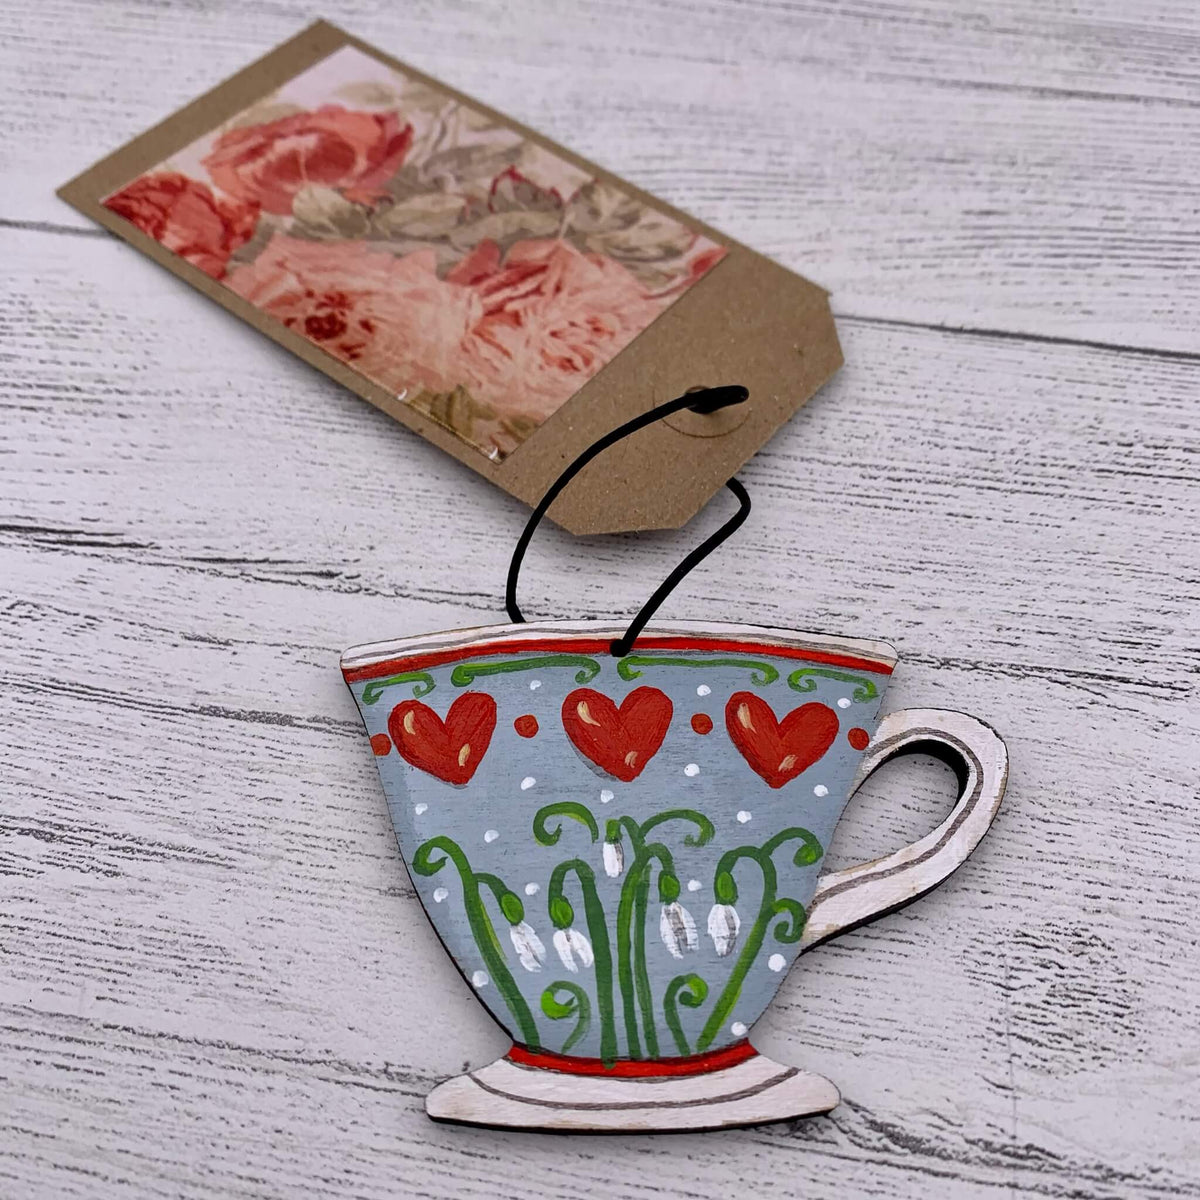 Hand Painted Teacup Decoration - Hearts/Snowdrops